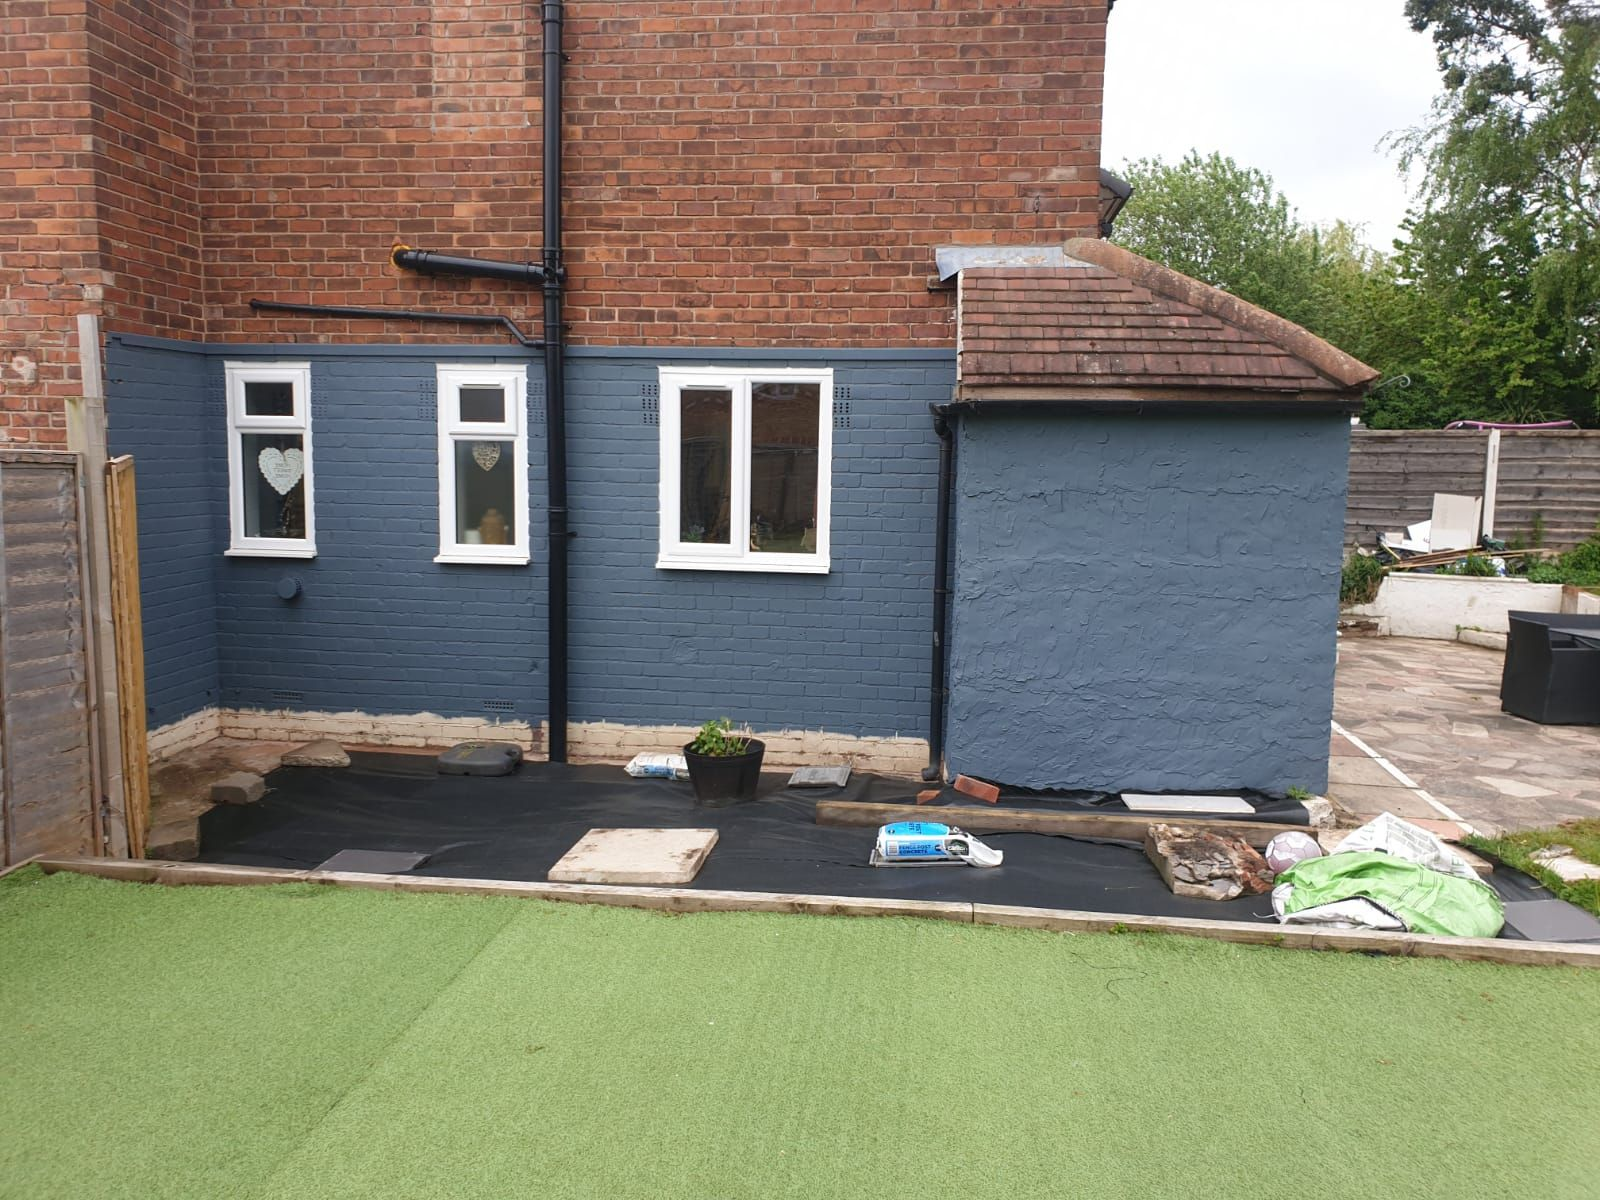 3 Bedroom Mid Terraced House For Sale - Work In Progress/Rear